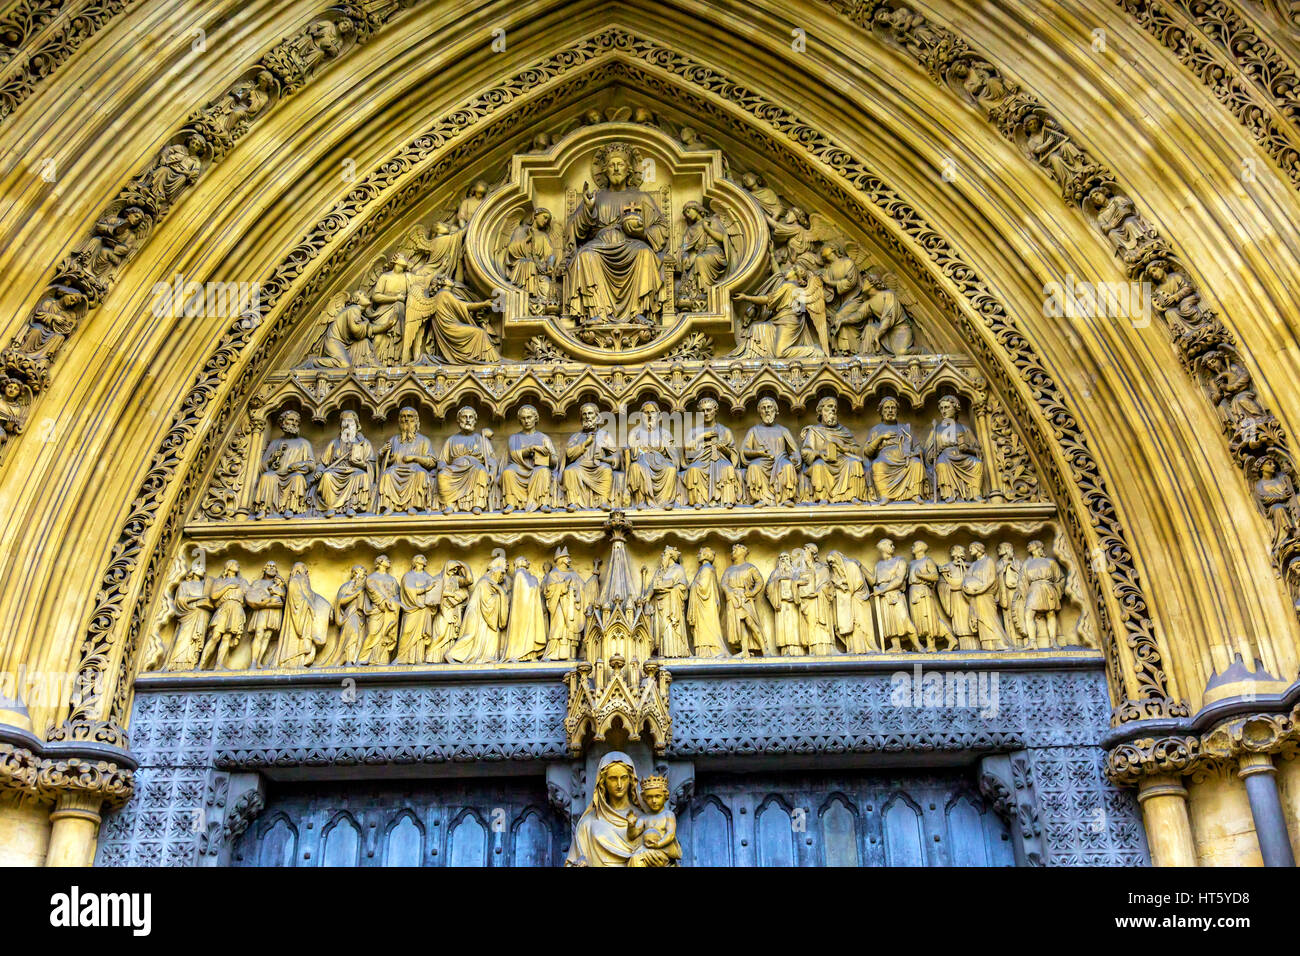 Mary Statue Door Facade Westminster Abbey Church London England. Westminister Abbey has been the burial place of Britain\u0027s monarchs since the 11th ce & Mary Statue Door Facade Westminster Abbey Church London England ... Pezcame.Com